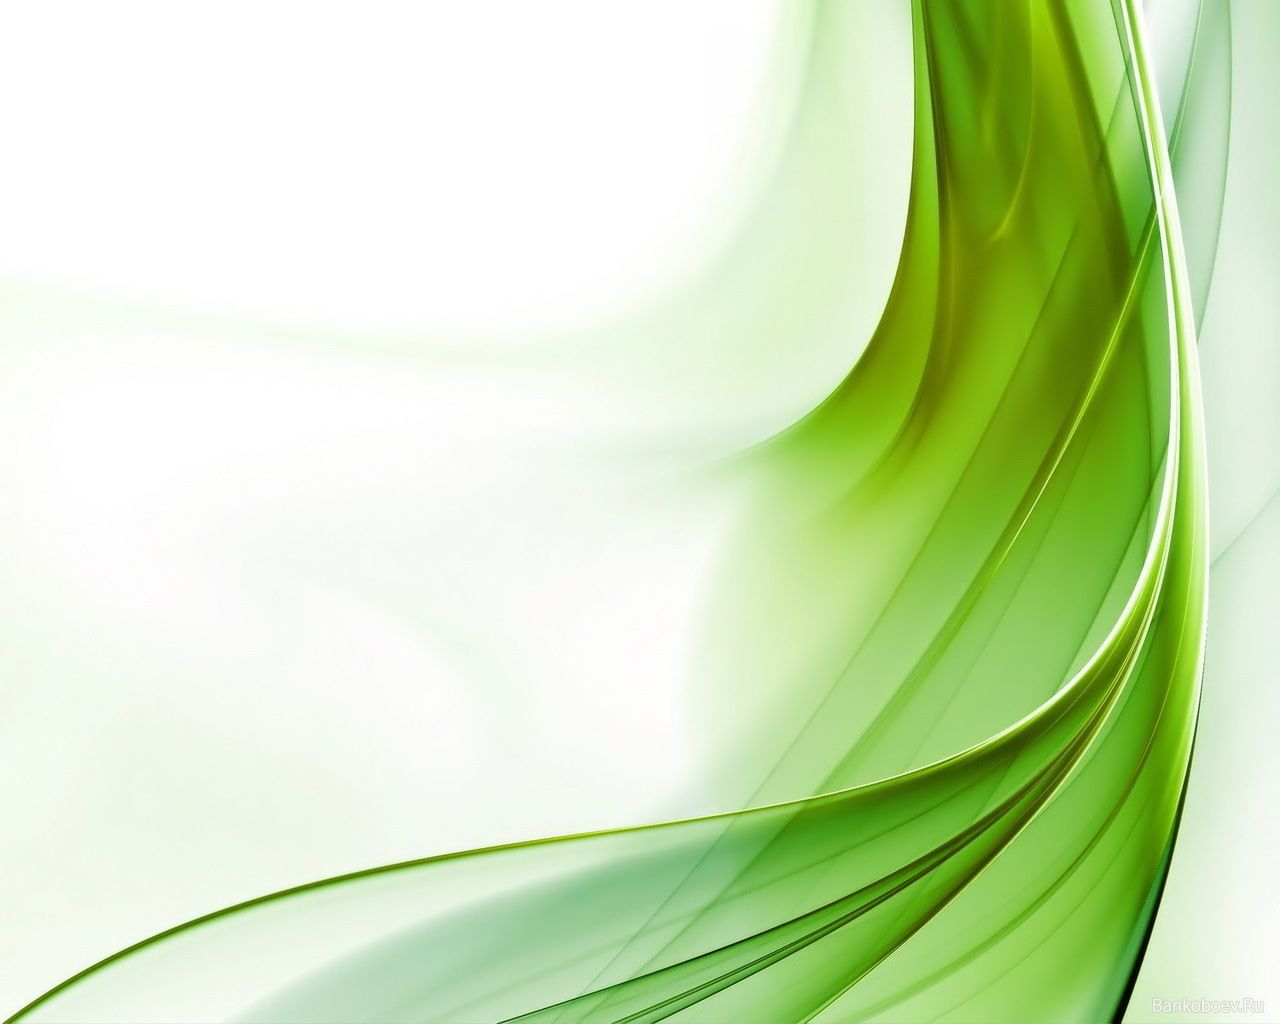 green wave abstract backgrounds for powerpoint templates